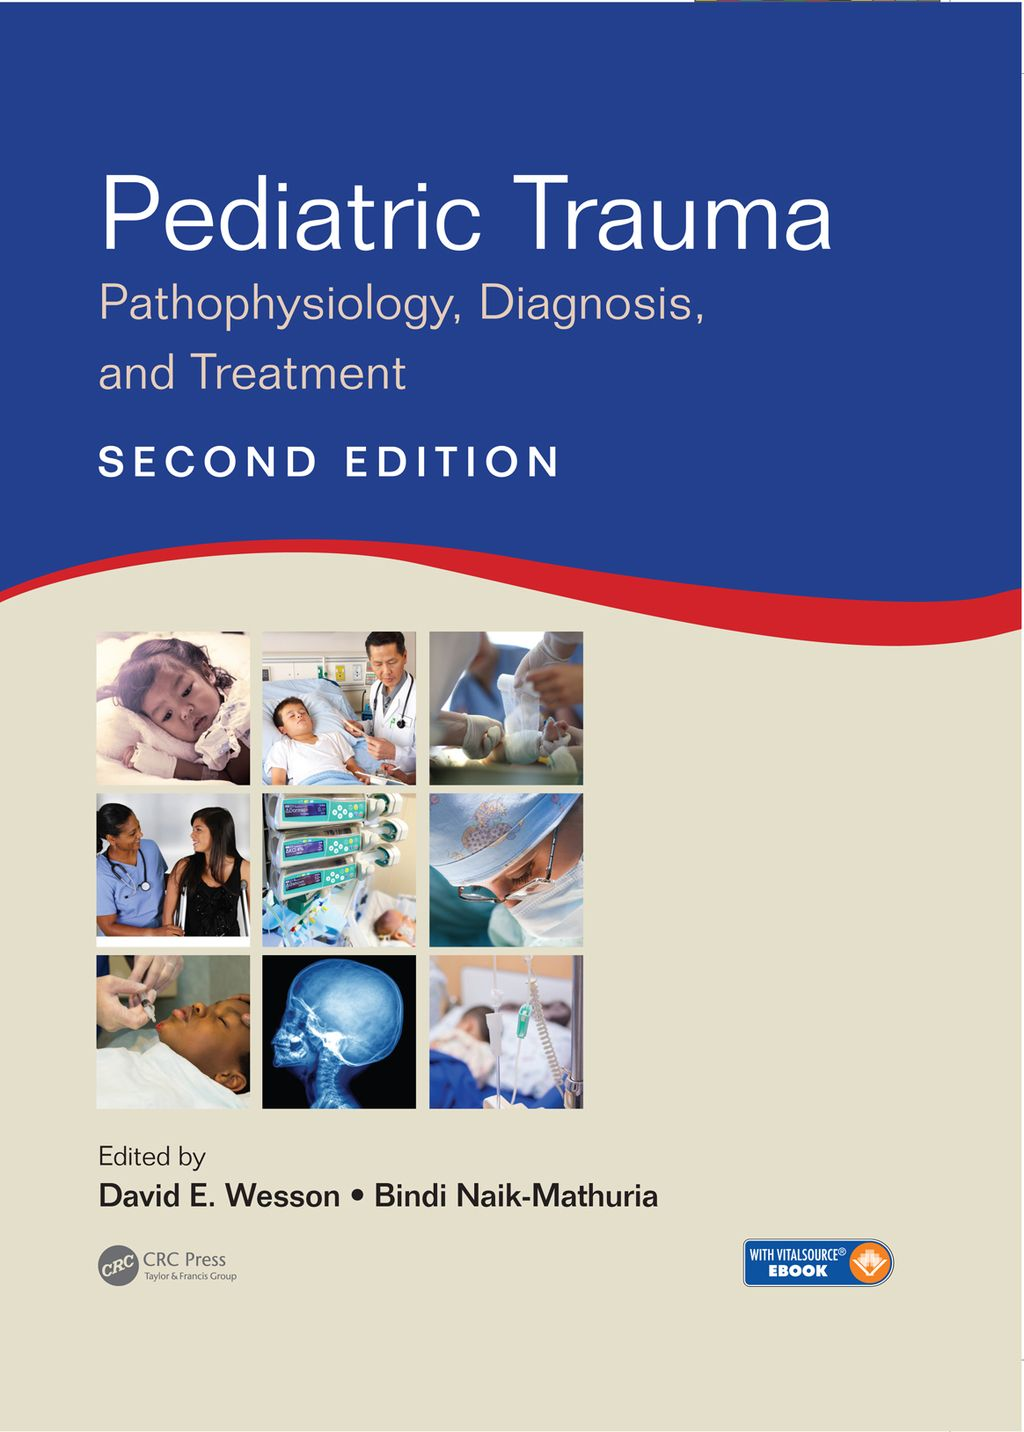 34++ Psychology books about childhood trauma ideas in 2021